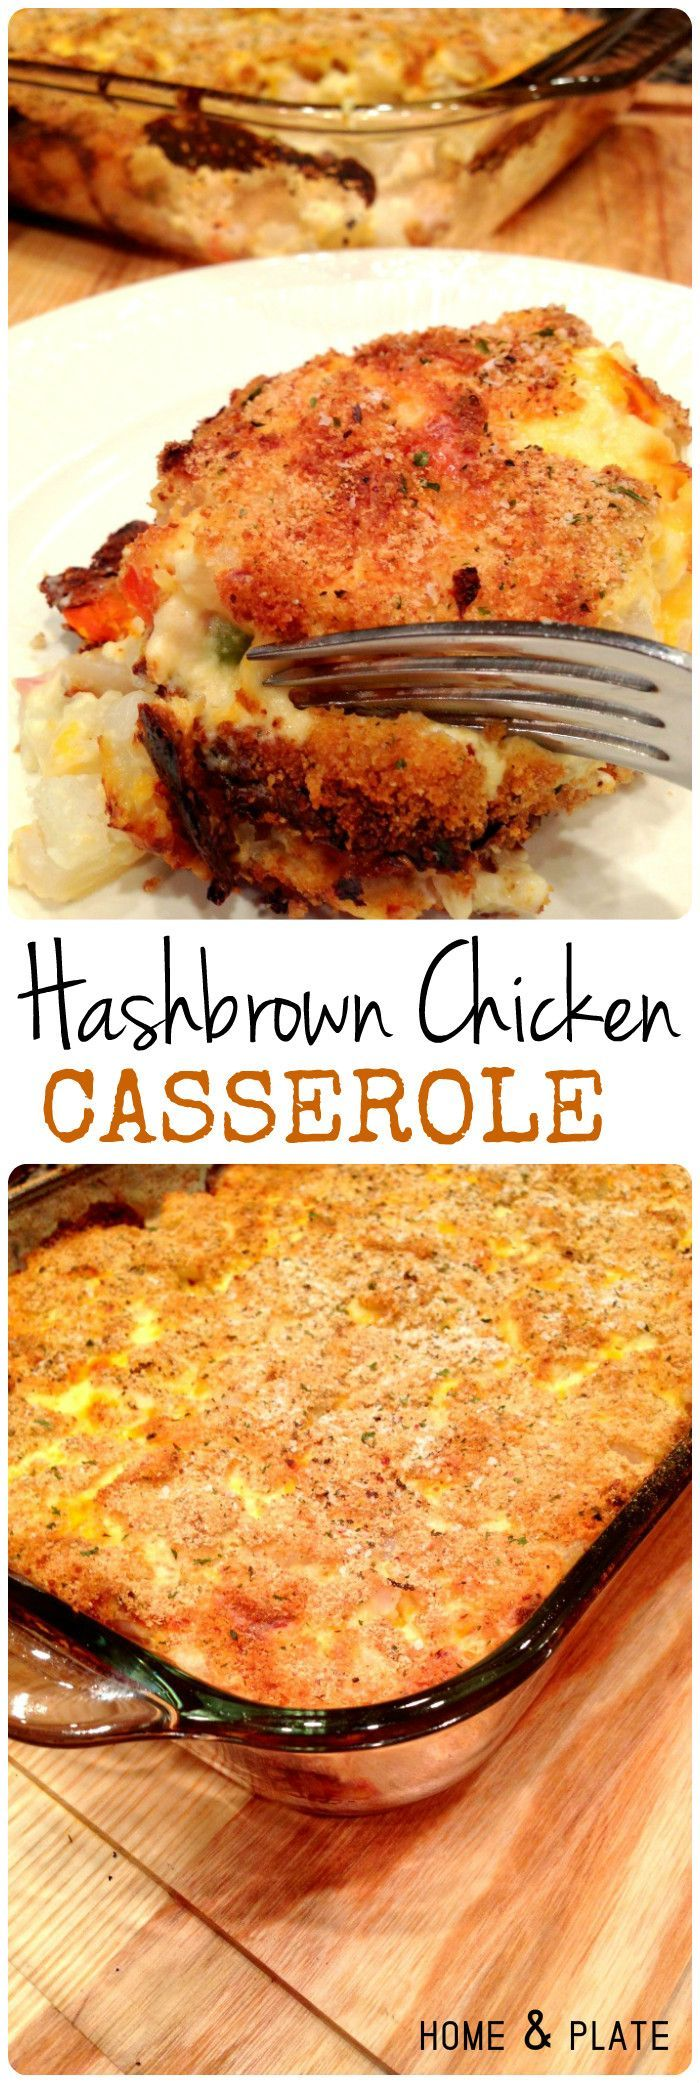 Hash Brown Chicken Casserole | www.homeandplate.com | This casserole has tender bits of roasted chicken breast, hash brown potatoes, shredded cheddar cheese and your favorite mixed vegetables.